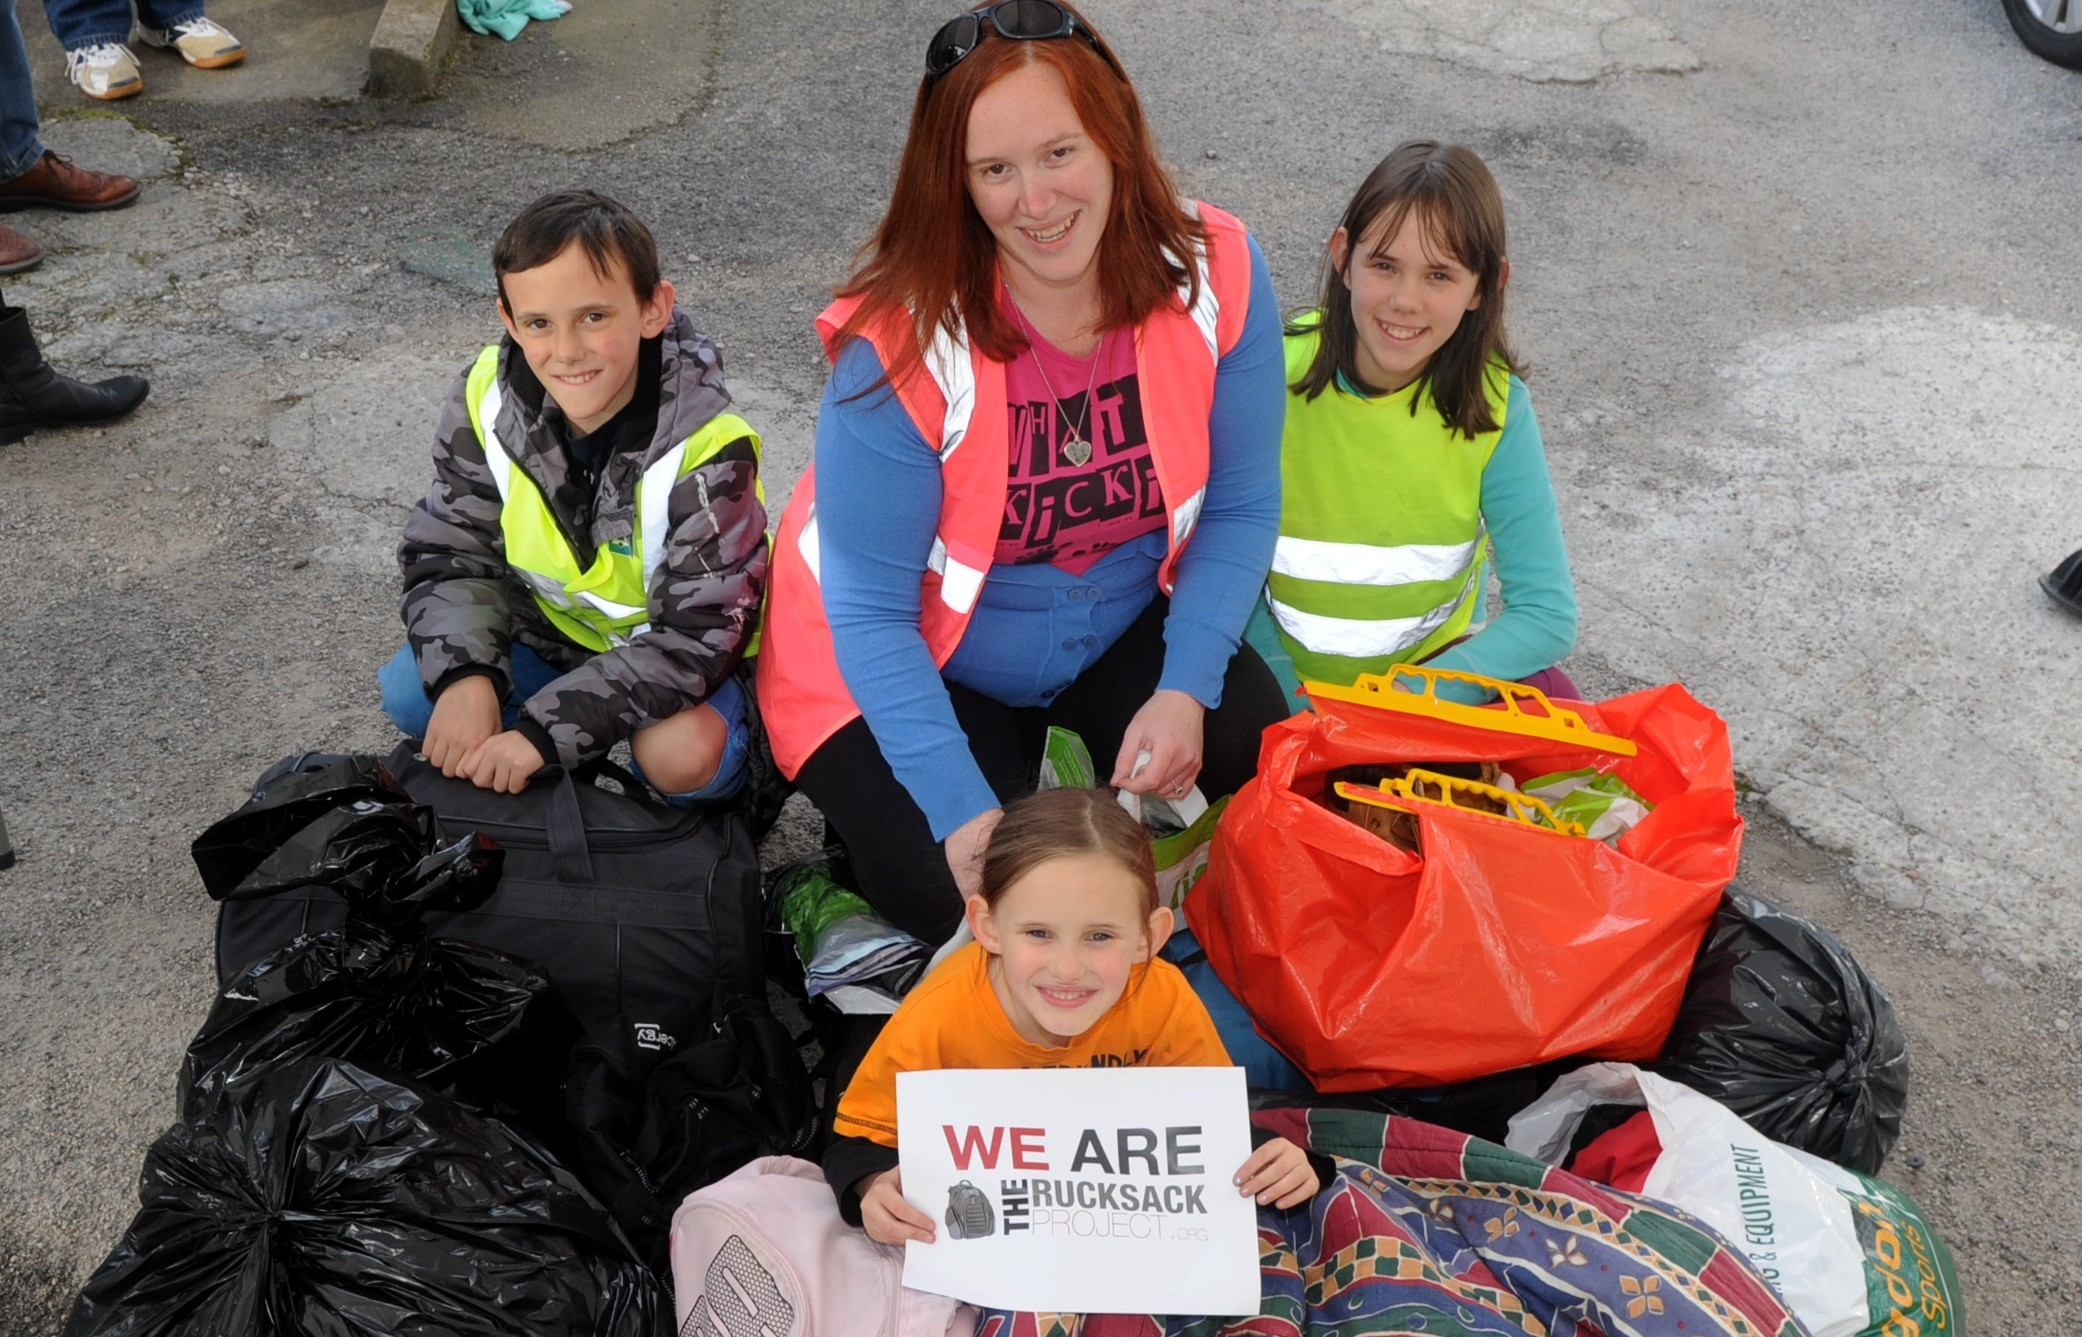 Amber Sebold, centre, held a rucksack collection for the homeless with her children, clockwise from left, Calvin, Cora and Maia.